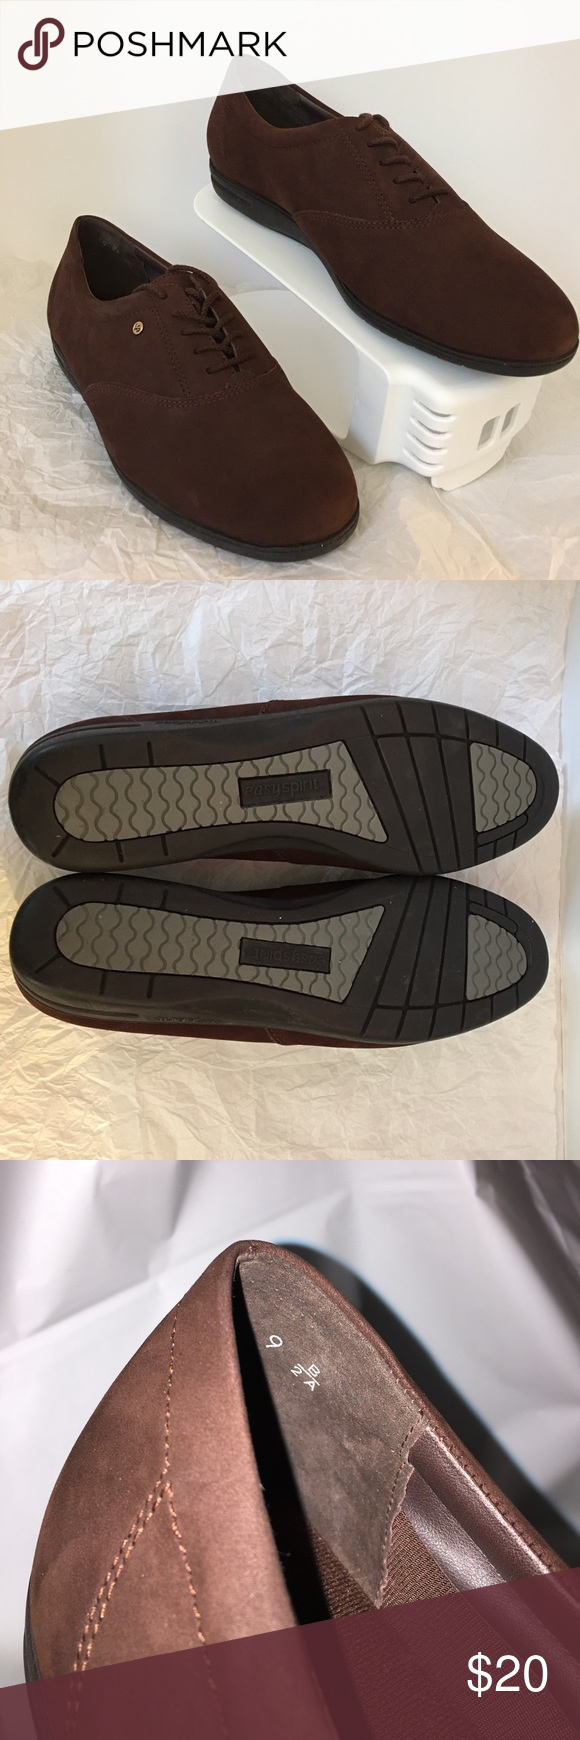 """Suede Easy Spirit shoes 👍new without box 👍NICE Women's Easy Spirit Anti Gravity IO-MOTIONS Walking Shoes-White-9 B/2A  Brand: Easy Spirit  Size: Women's 9 B/2A.  Brown side leather   Approximate Measurements: Bottom of sole- length: 10 1/2"""" width: 3 3/8"""". Smoke and pet free house Easy Spirit Shoes Flats & Loafers"""